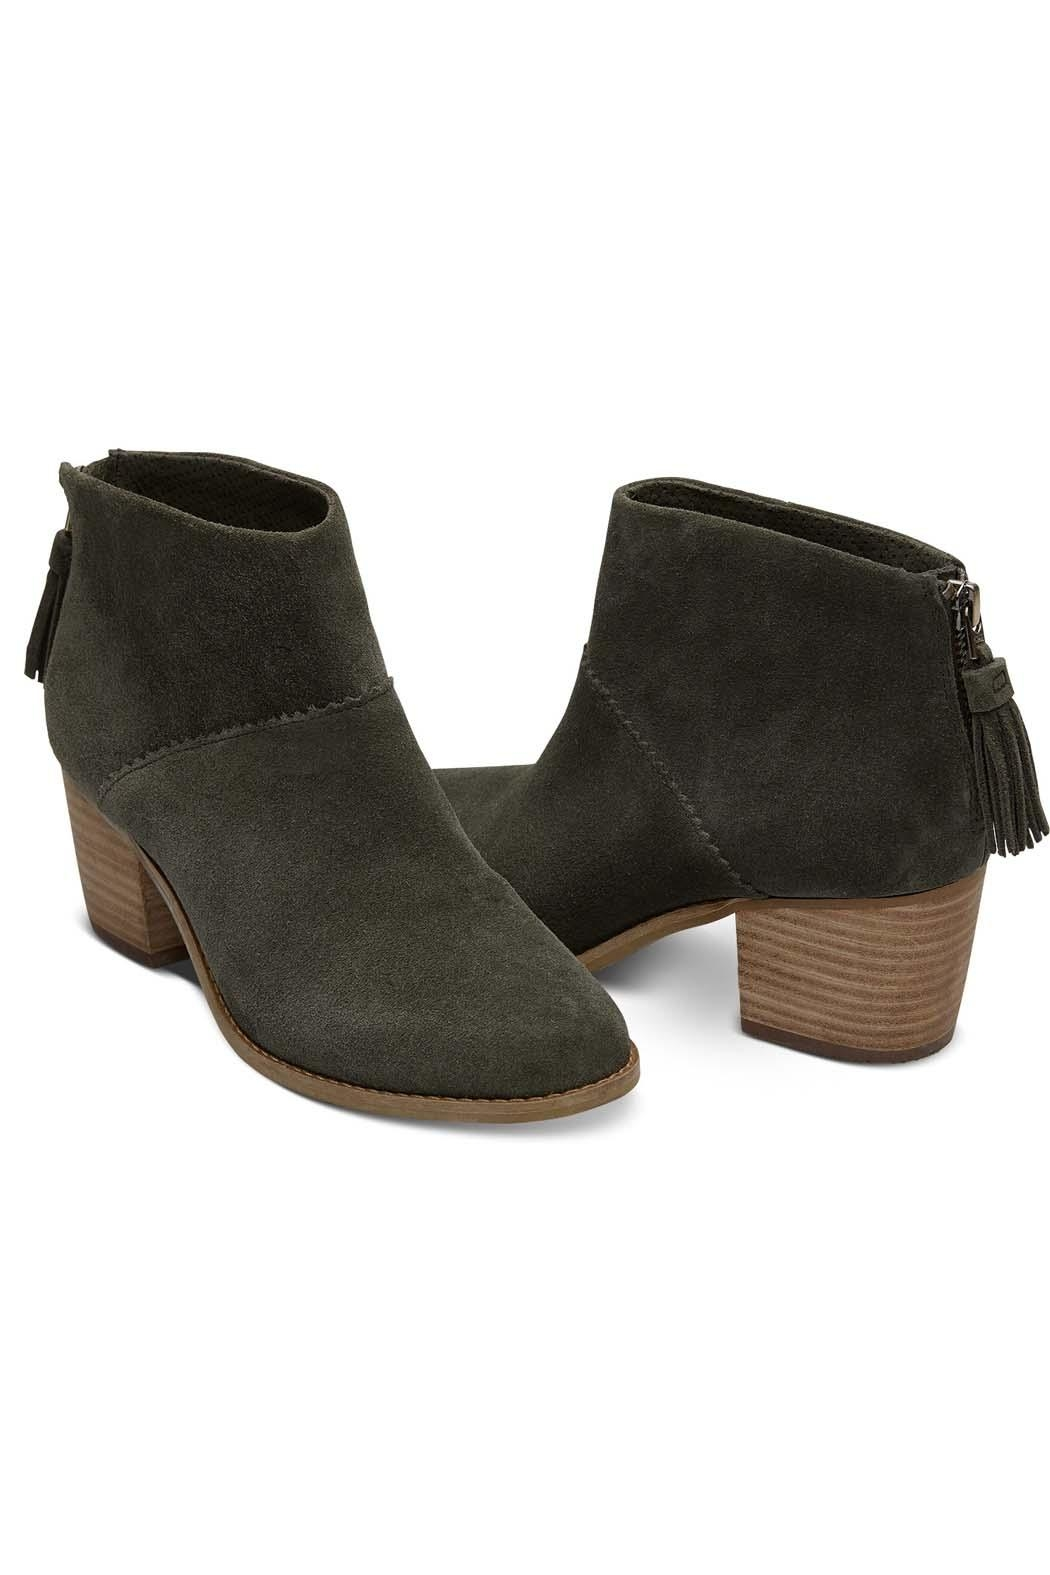 TOMS Forest Suede Bootie - Front Full Image